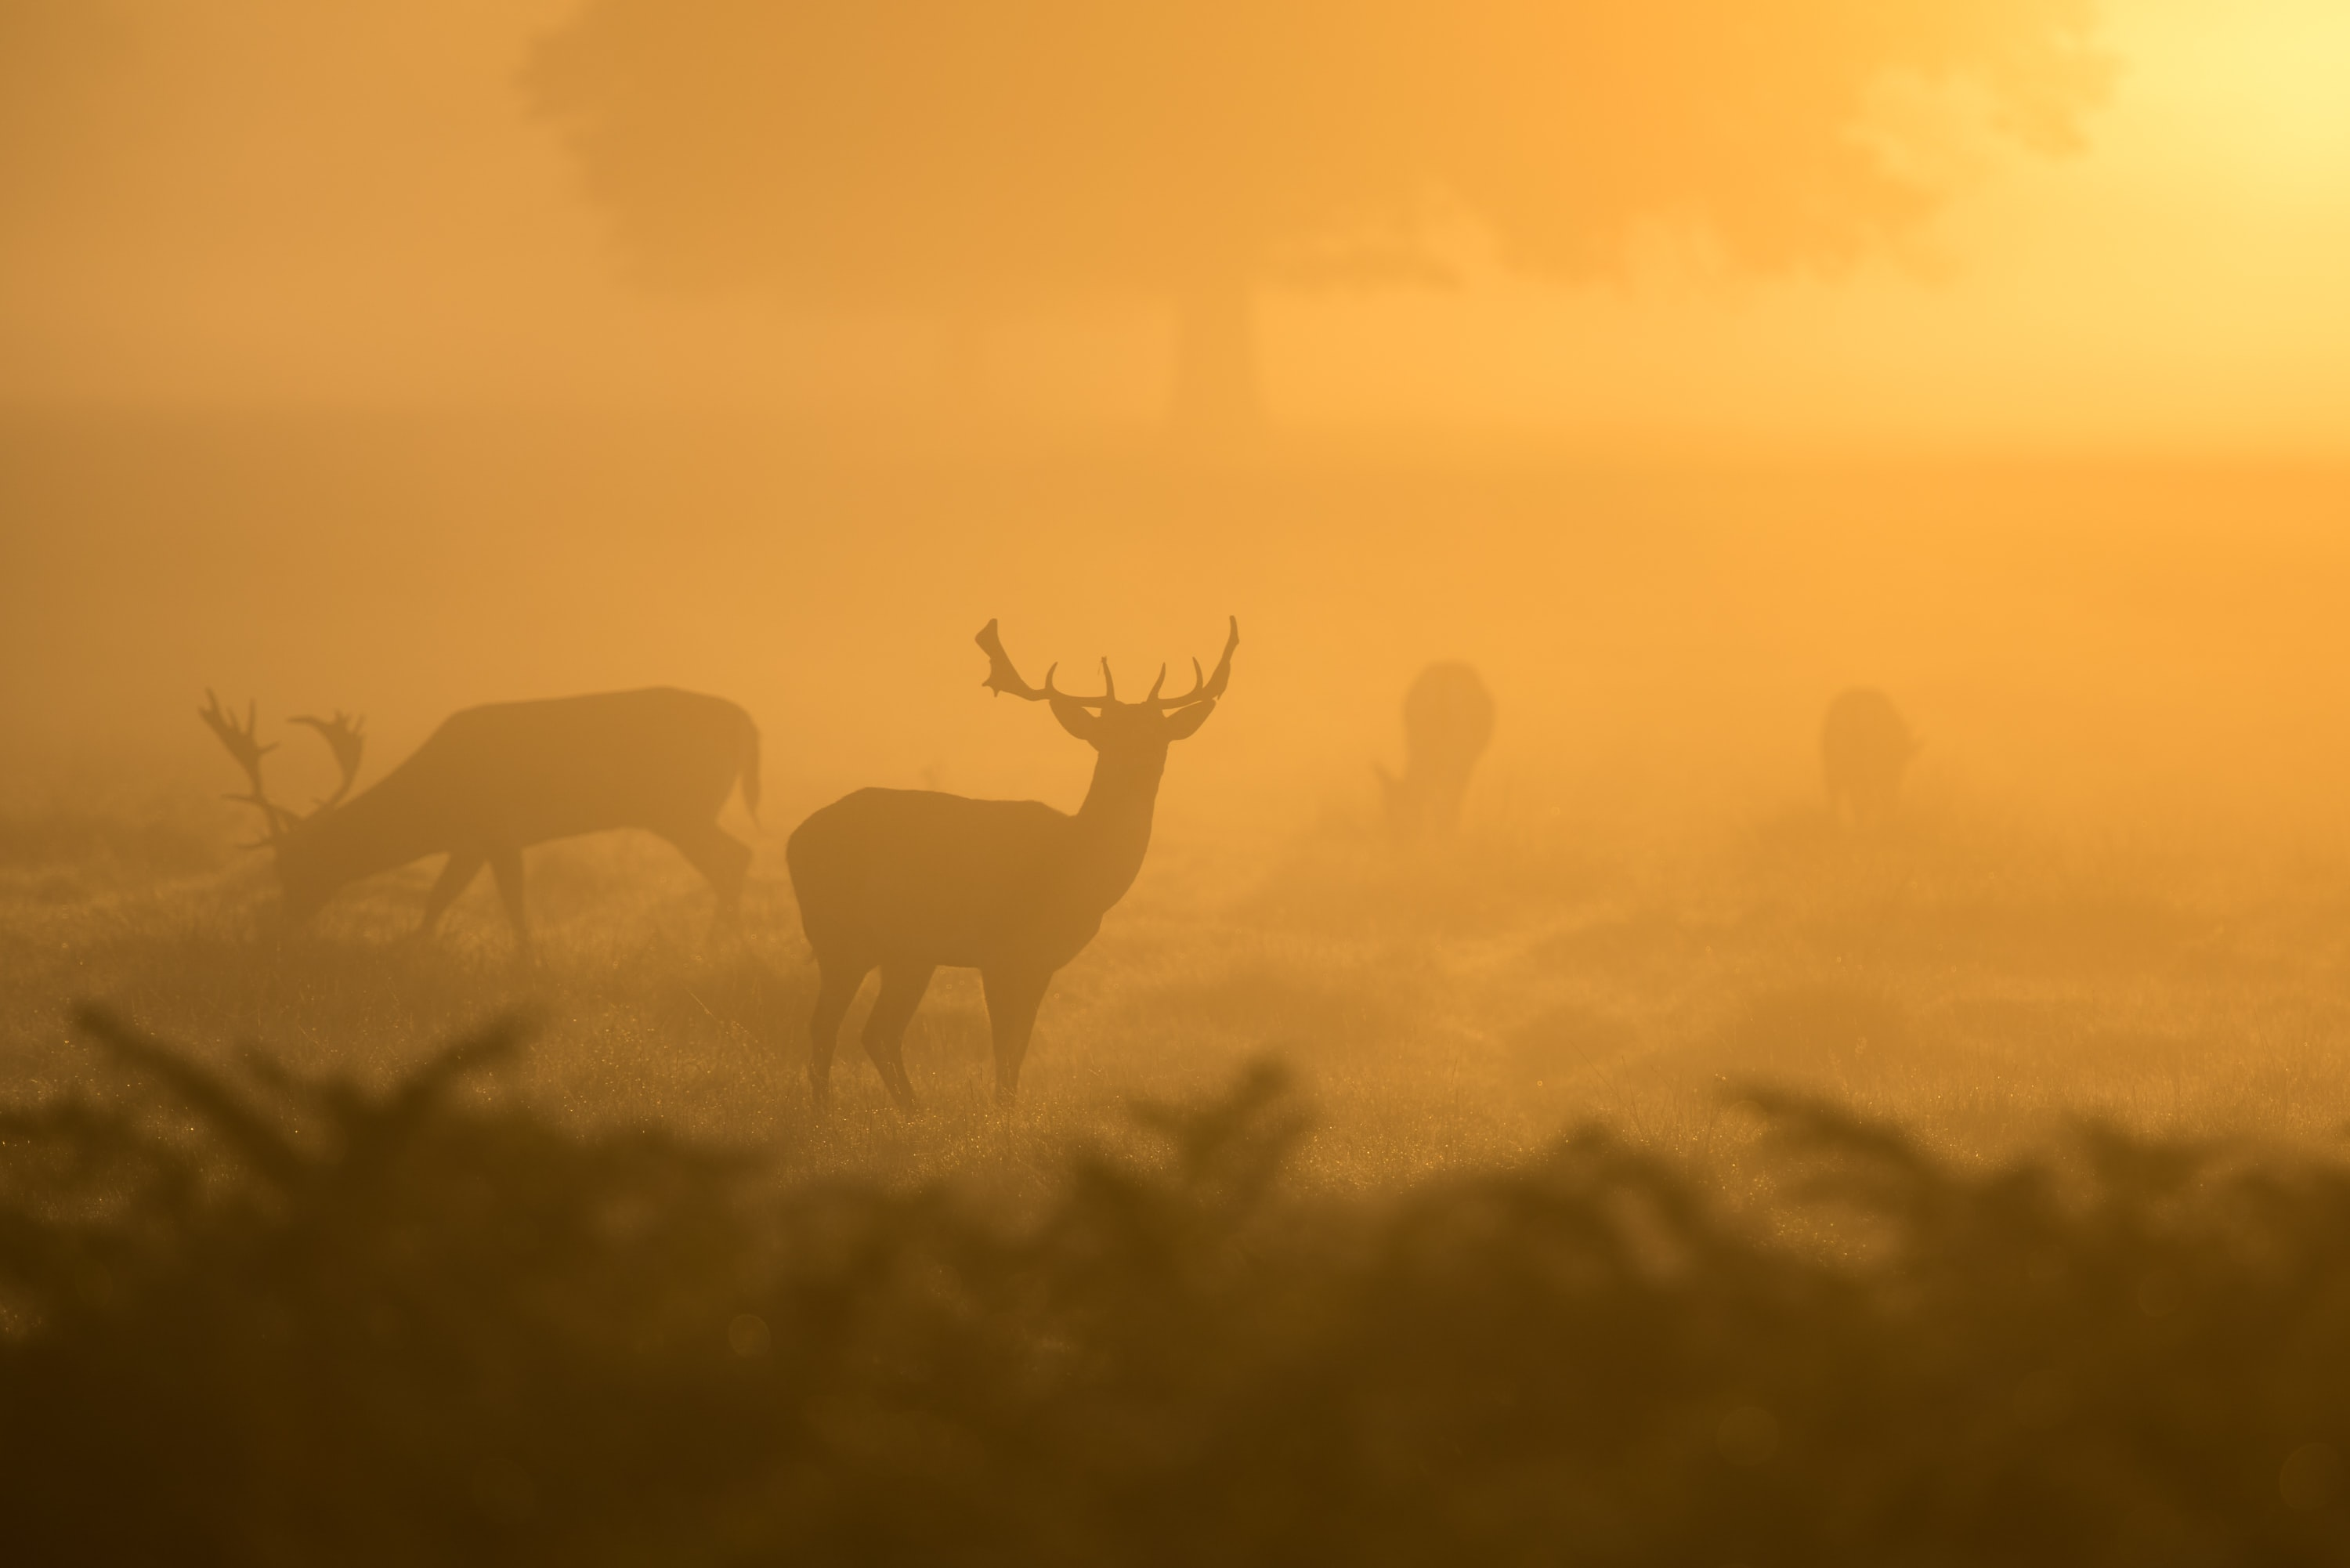 two deers silhouettes